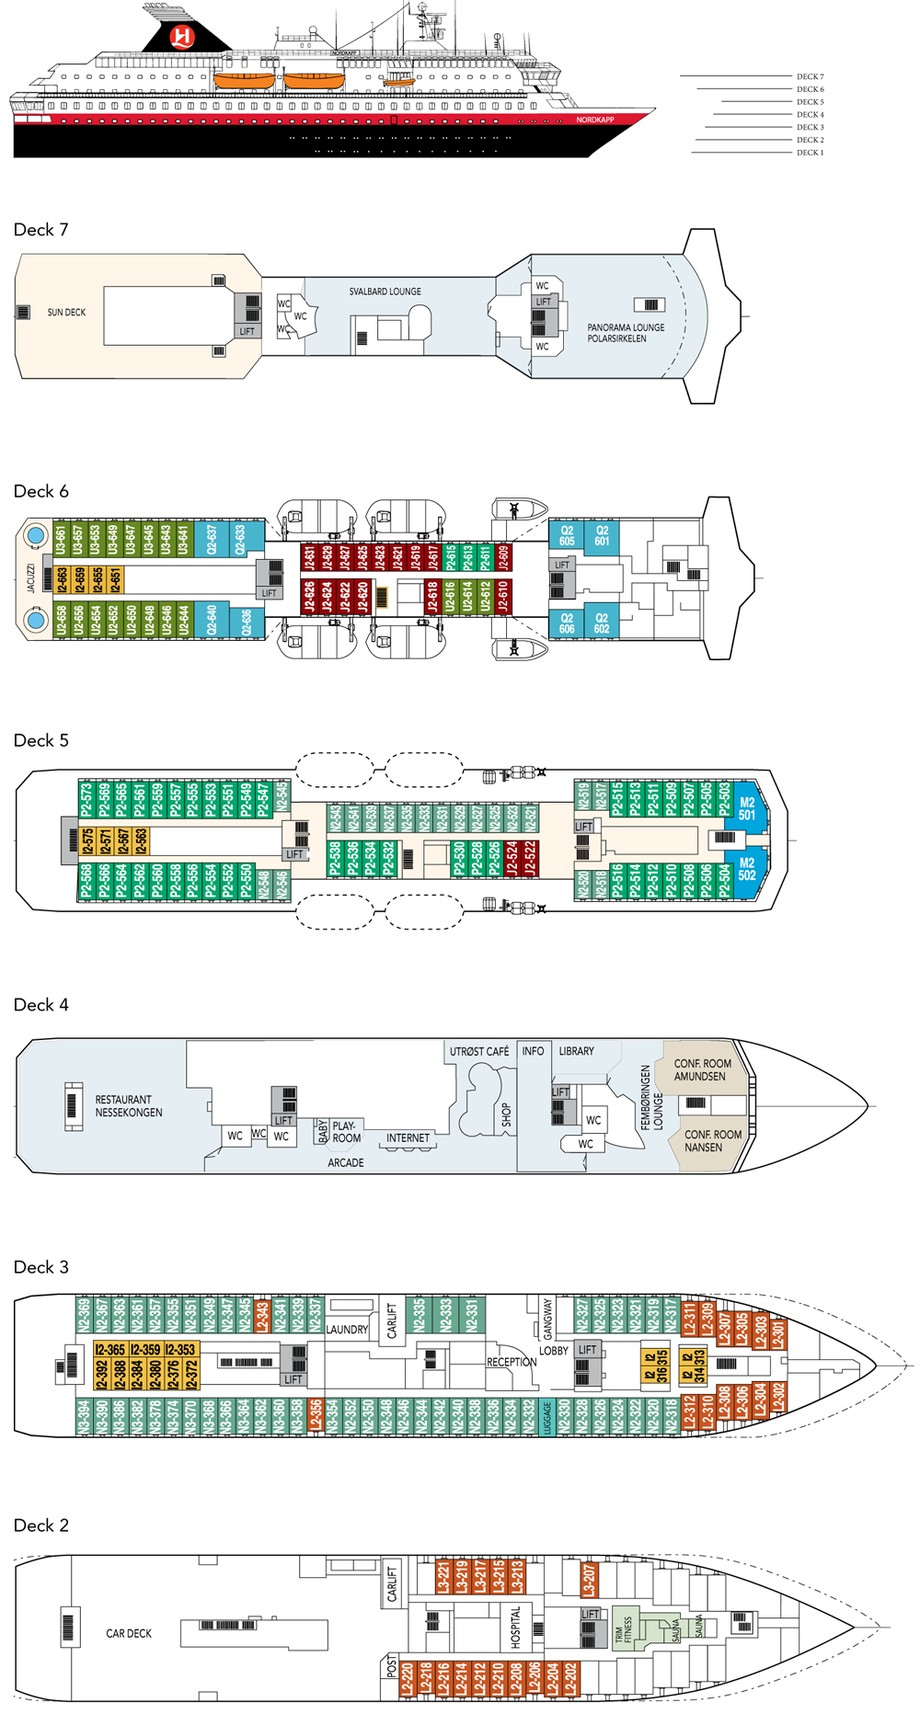 Cabin layout for Hurtigruten Ships